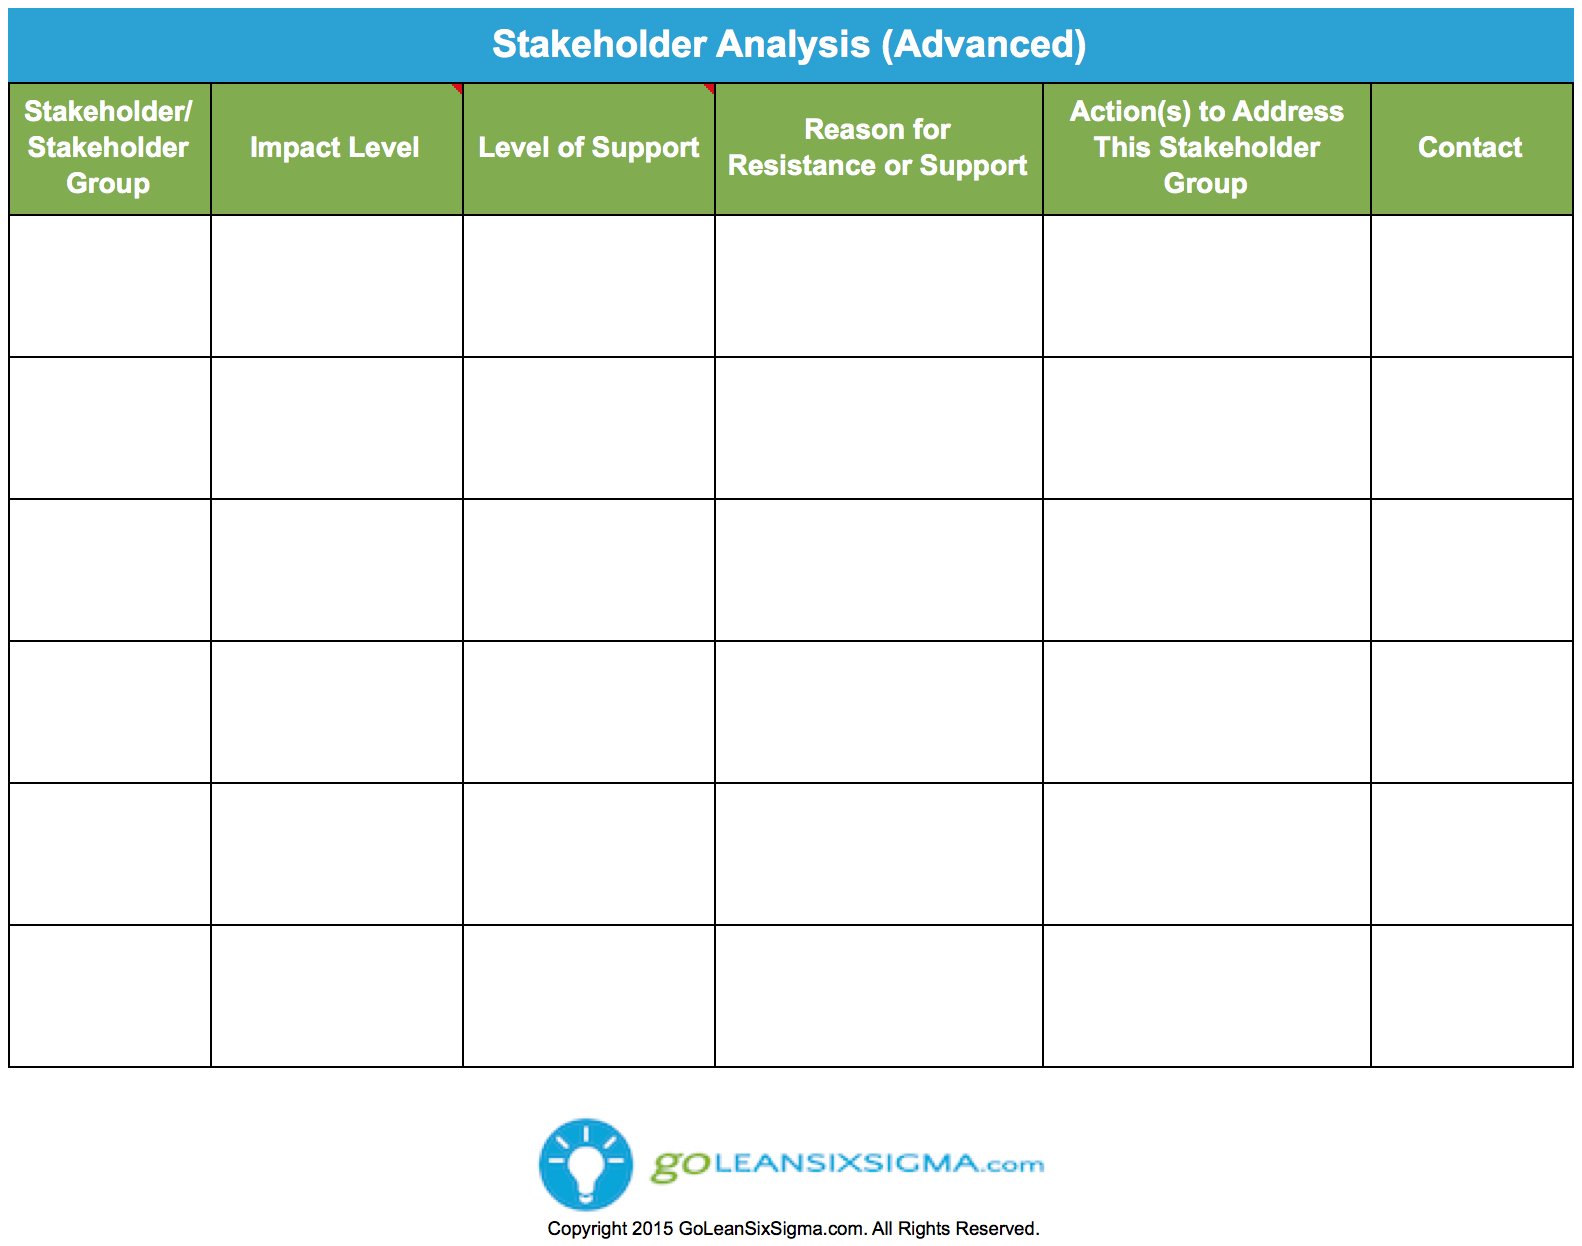 Stakeholder Analysis Advanced  GoleansixsigmaCom  Lean Six